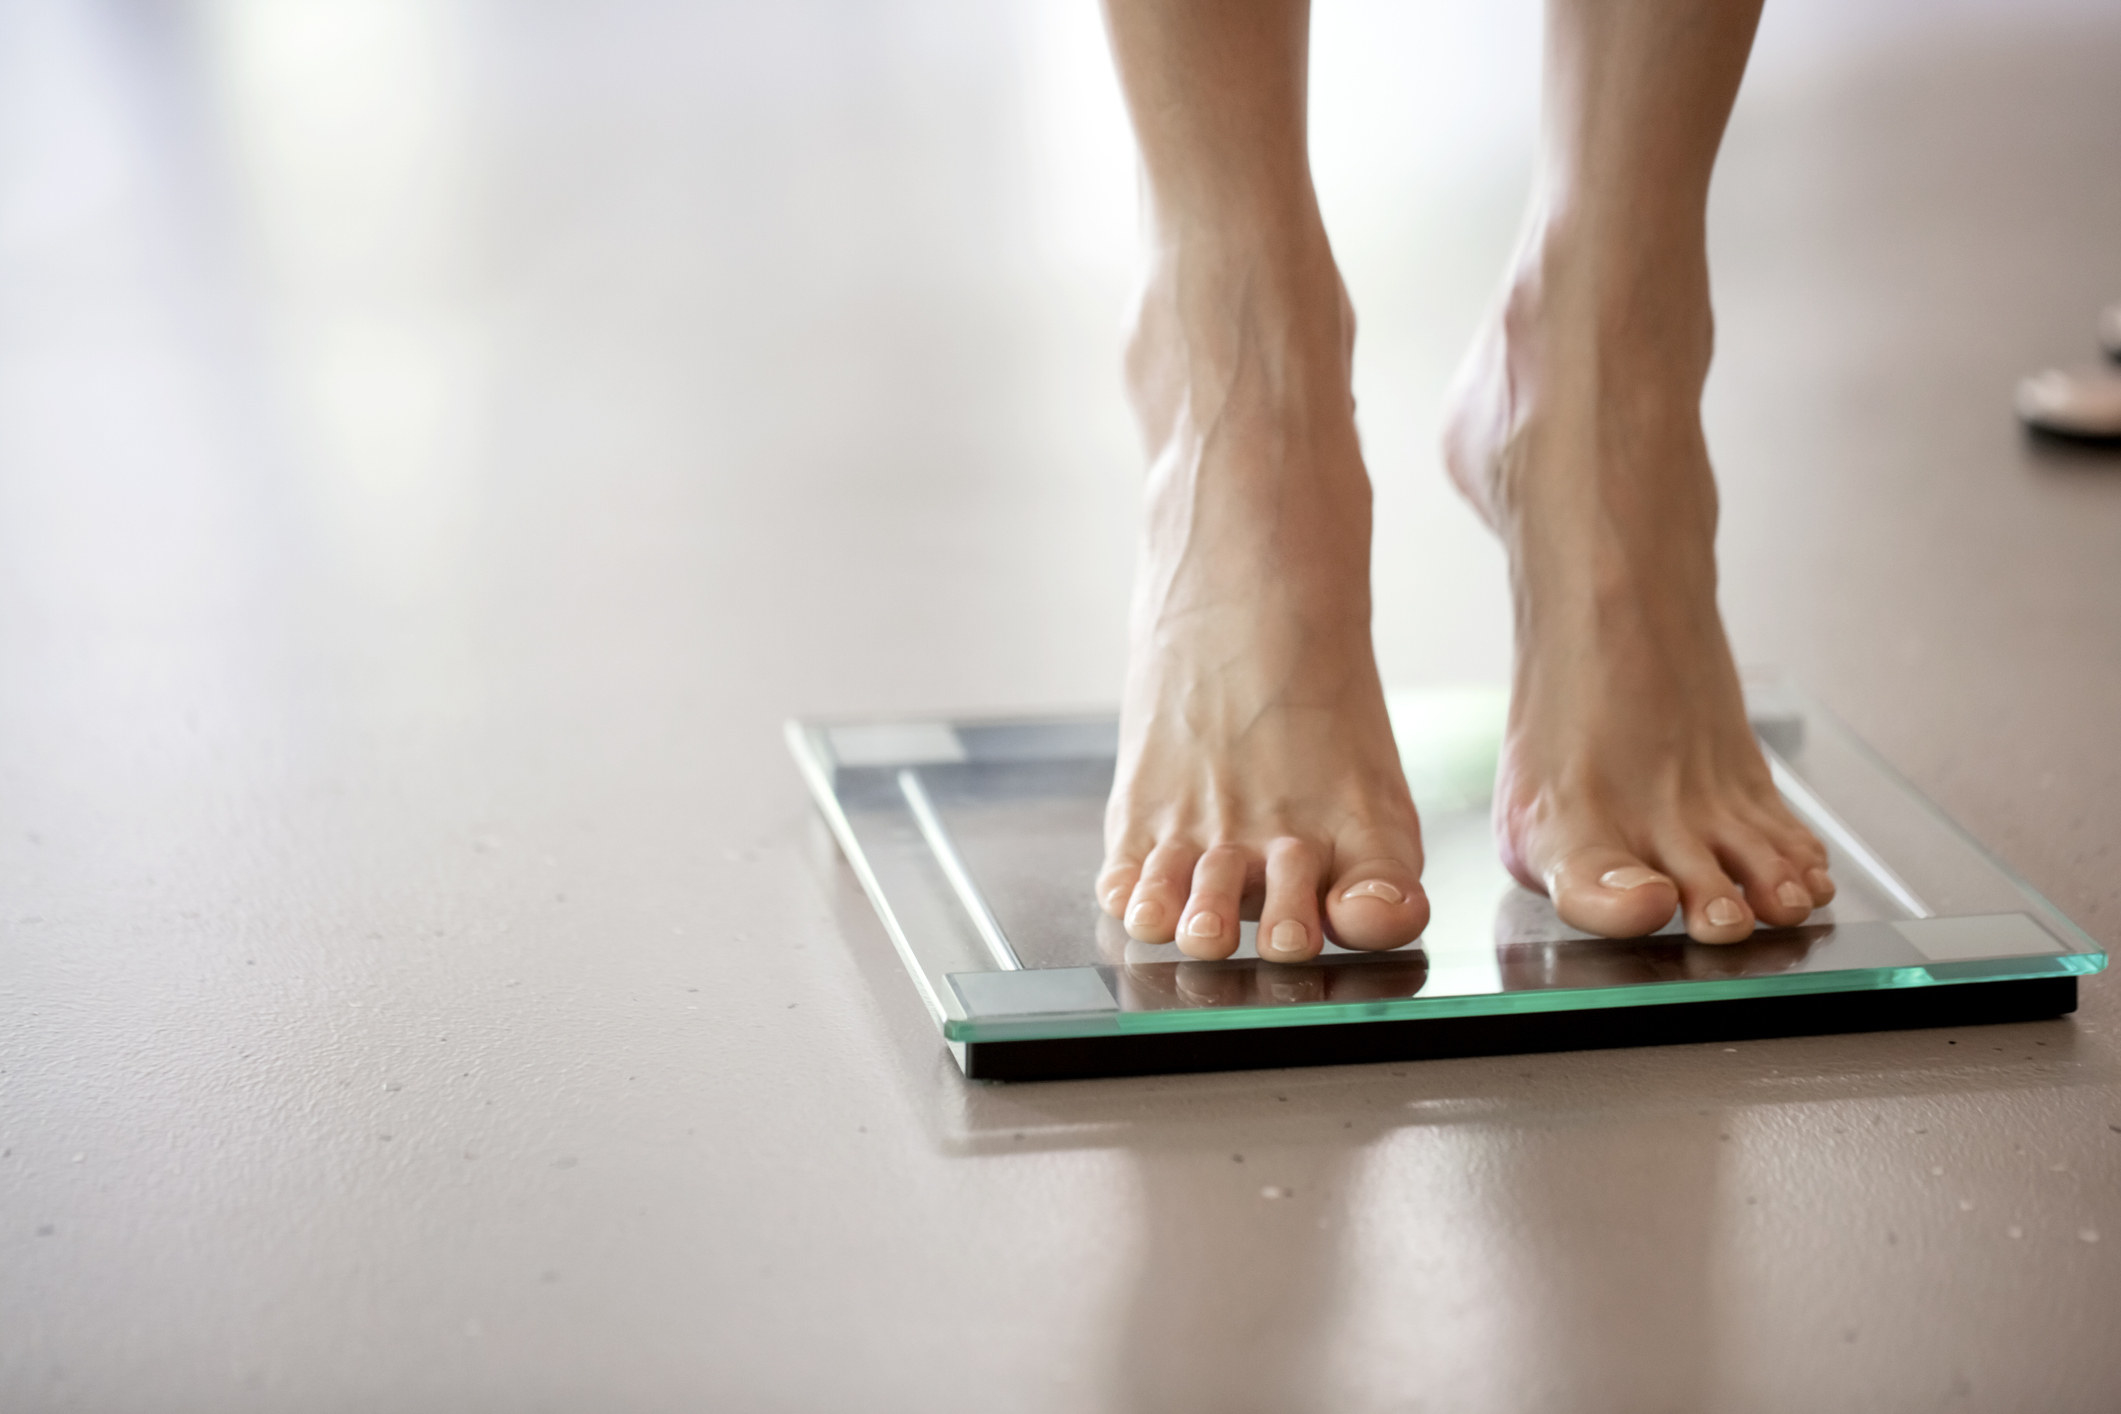 A woman stepping on a scale.